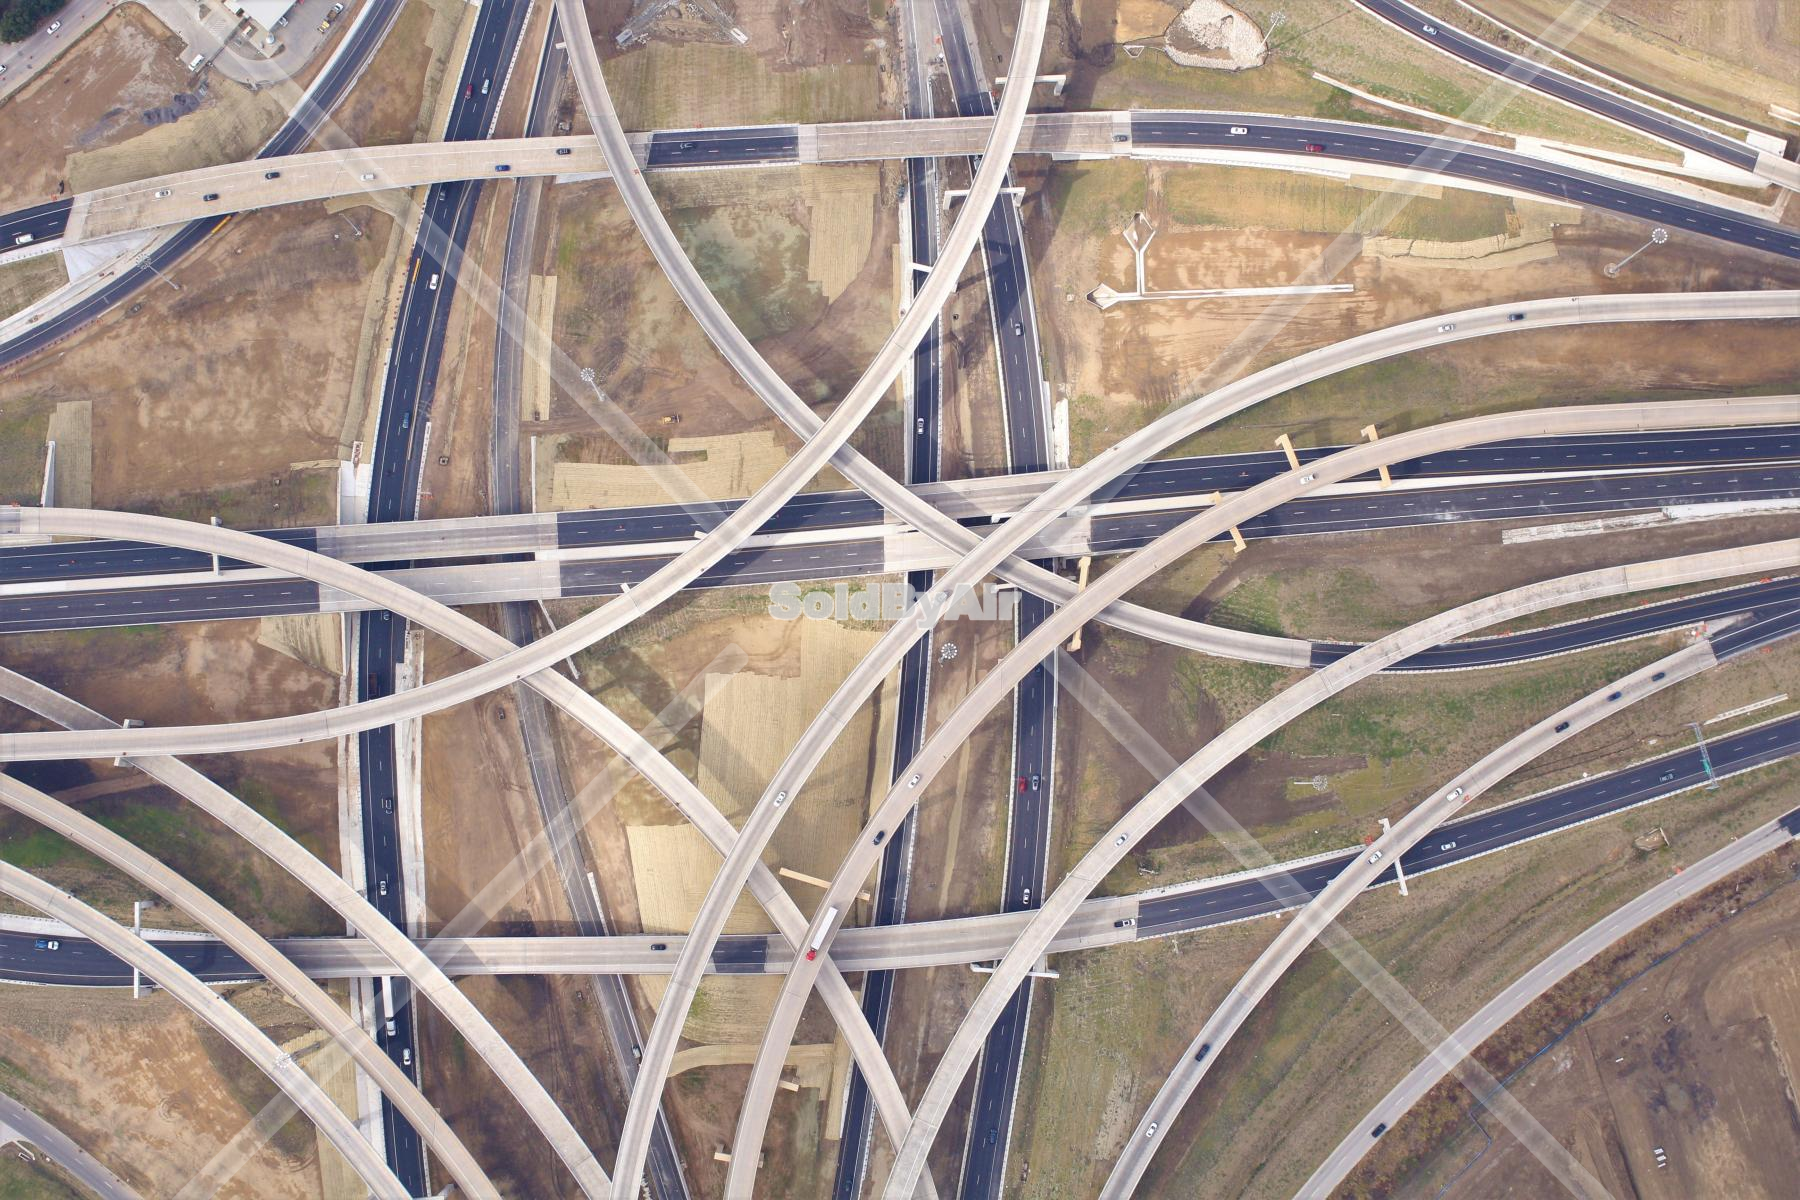 Drone Photo of I-35 and 820 Intersection in Fort Worth Texas